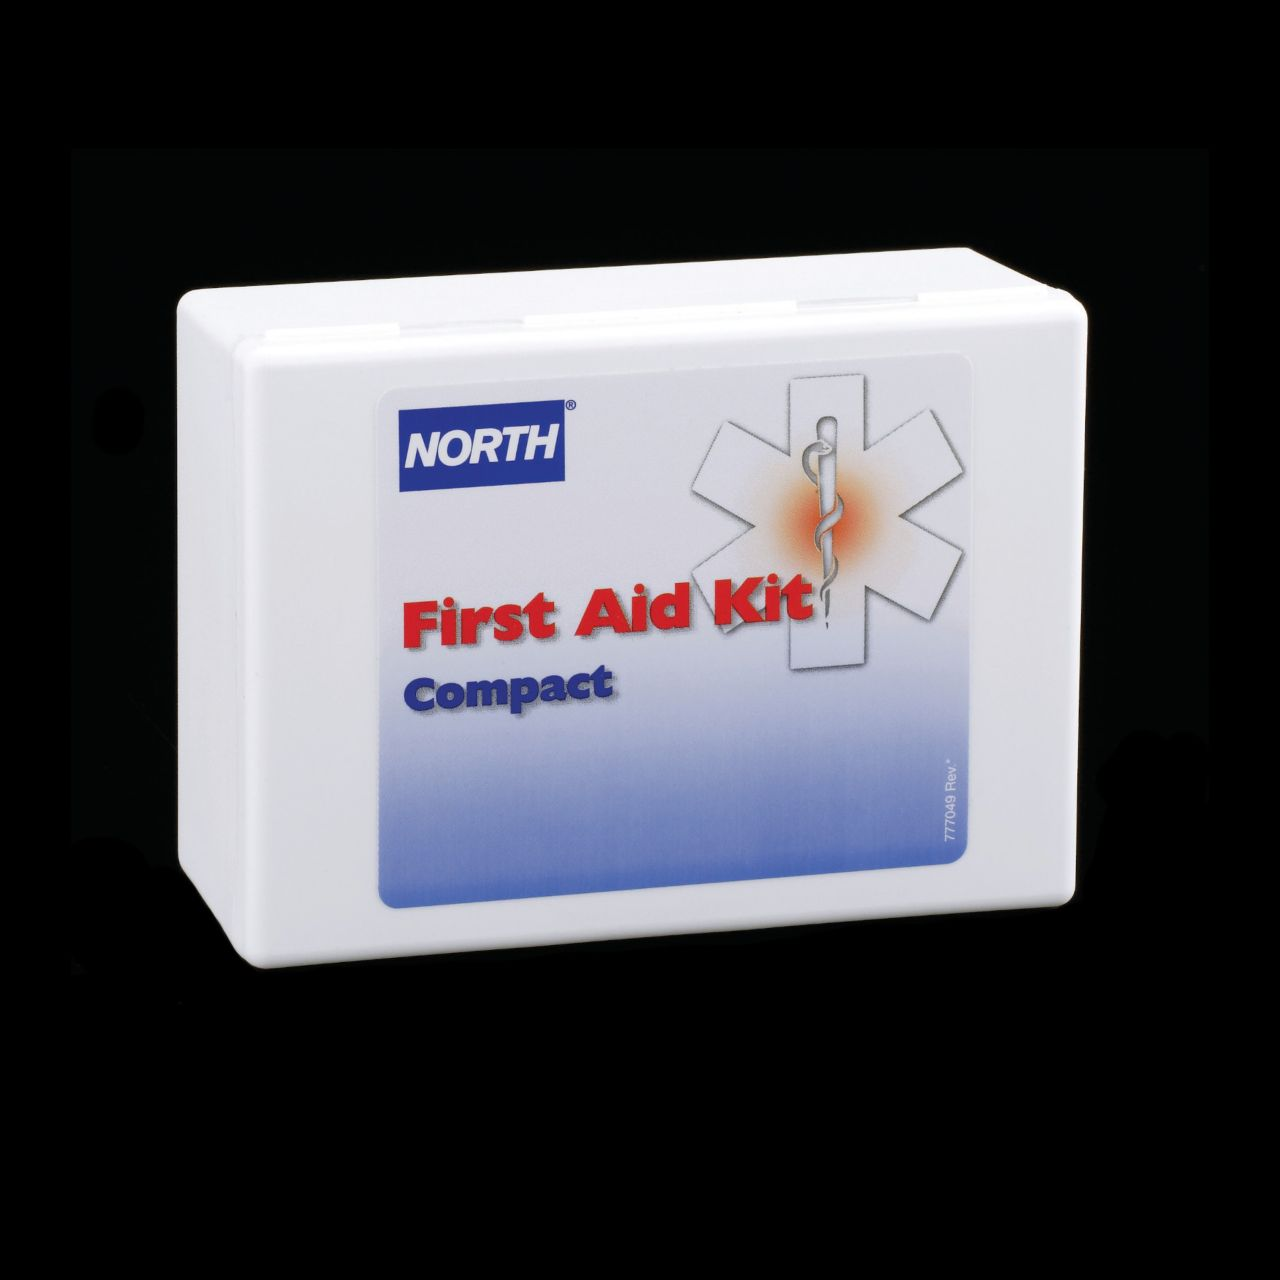 HS_019733-0020l_-_compact_first_aid_kit_north_019733-0020l